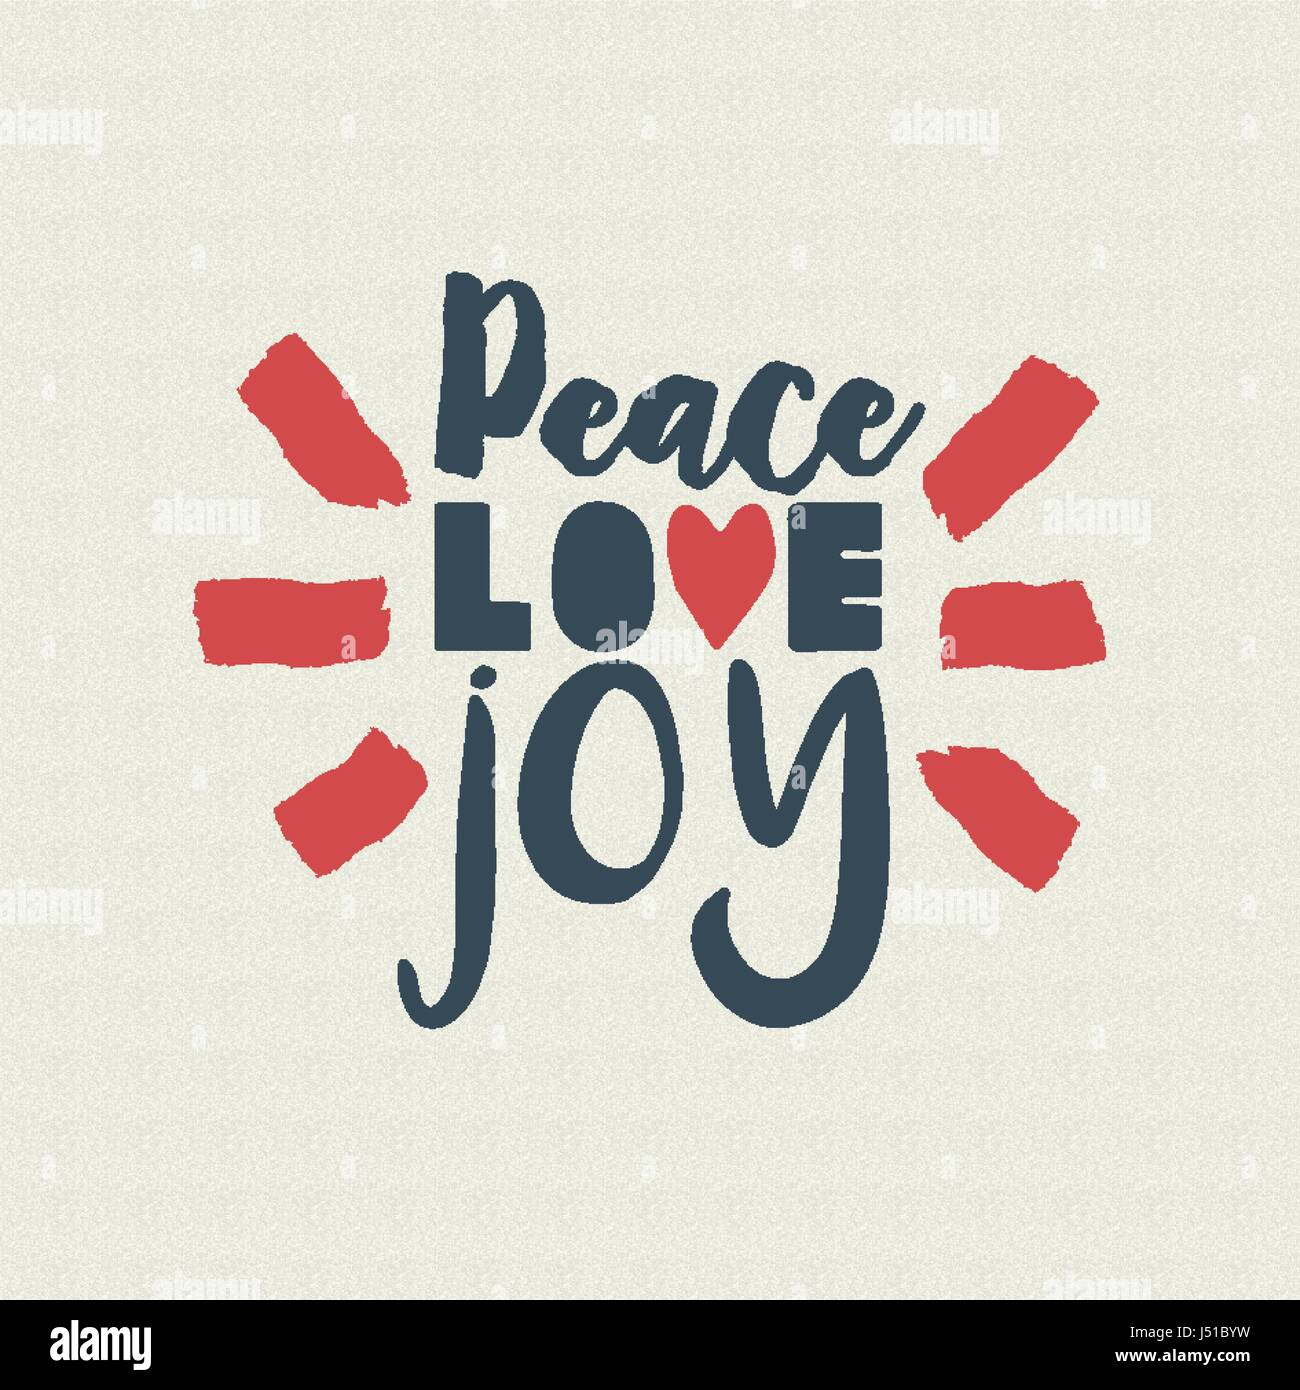 Merry christmas vintage calligraphic quote design peace love joy merry christmas vintage calligraphic quote design peace love joy lettering illustration for holiday season greeting card eps10 vector m4hsunfo